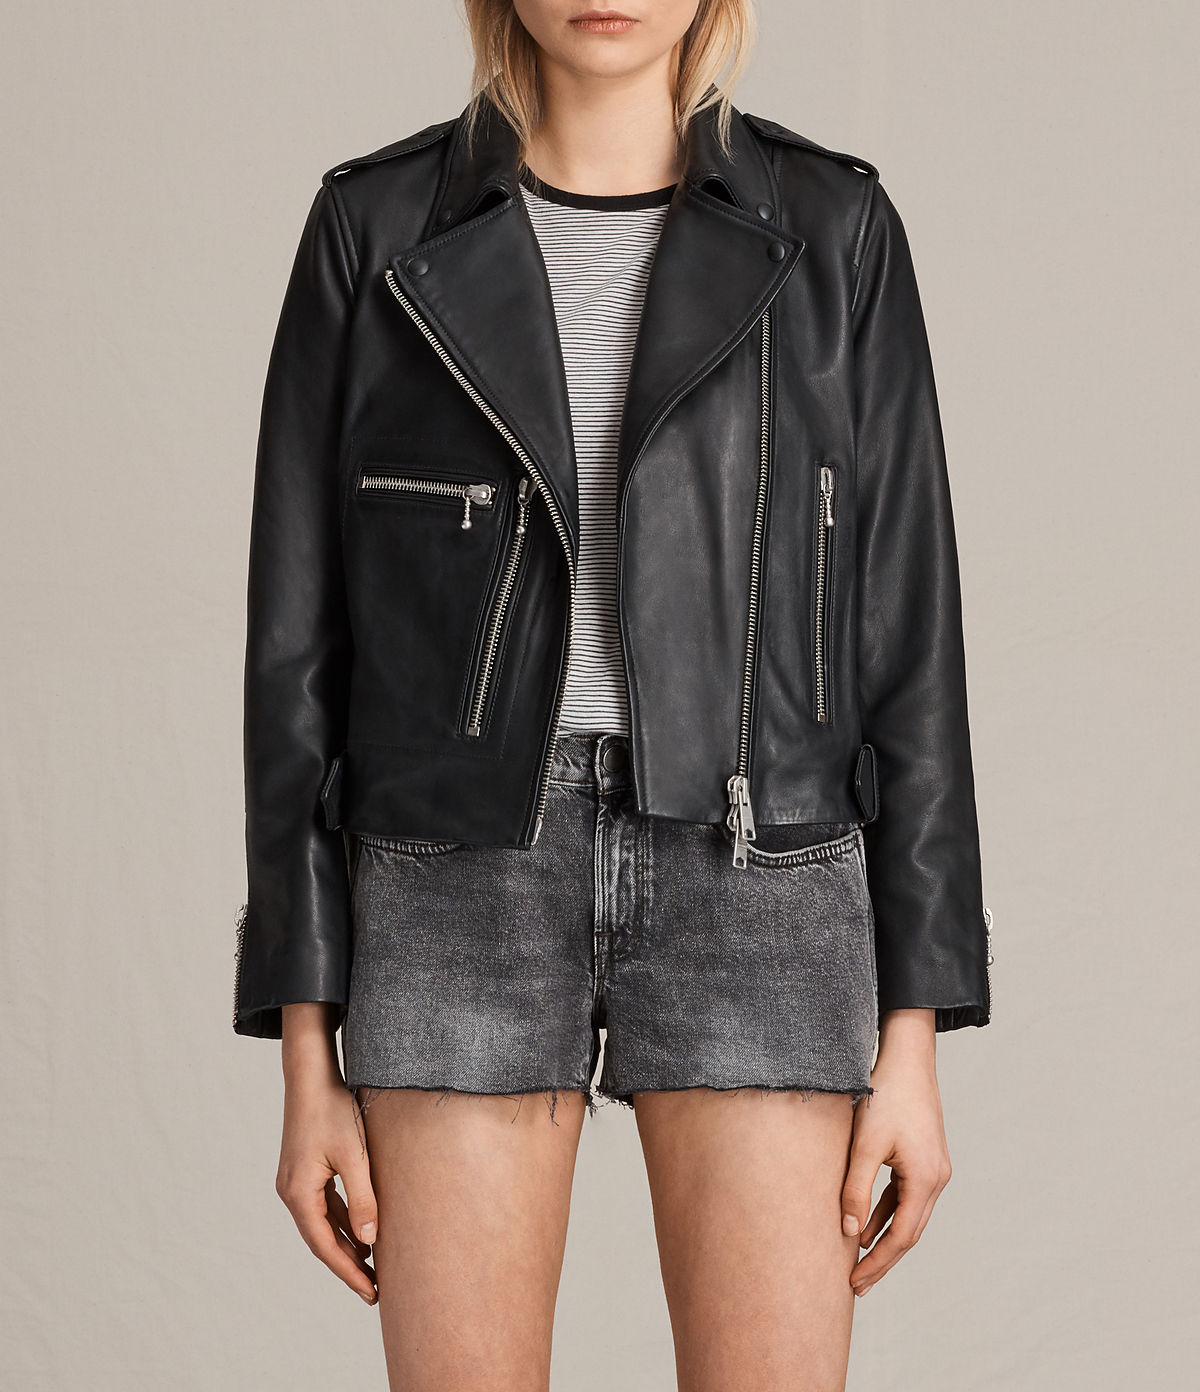 ALLSAINTS UK: Leather jackets for women, shop now.